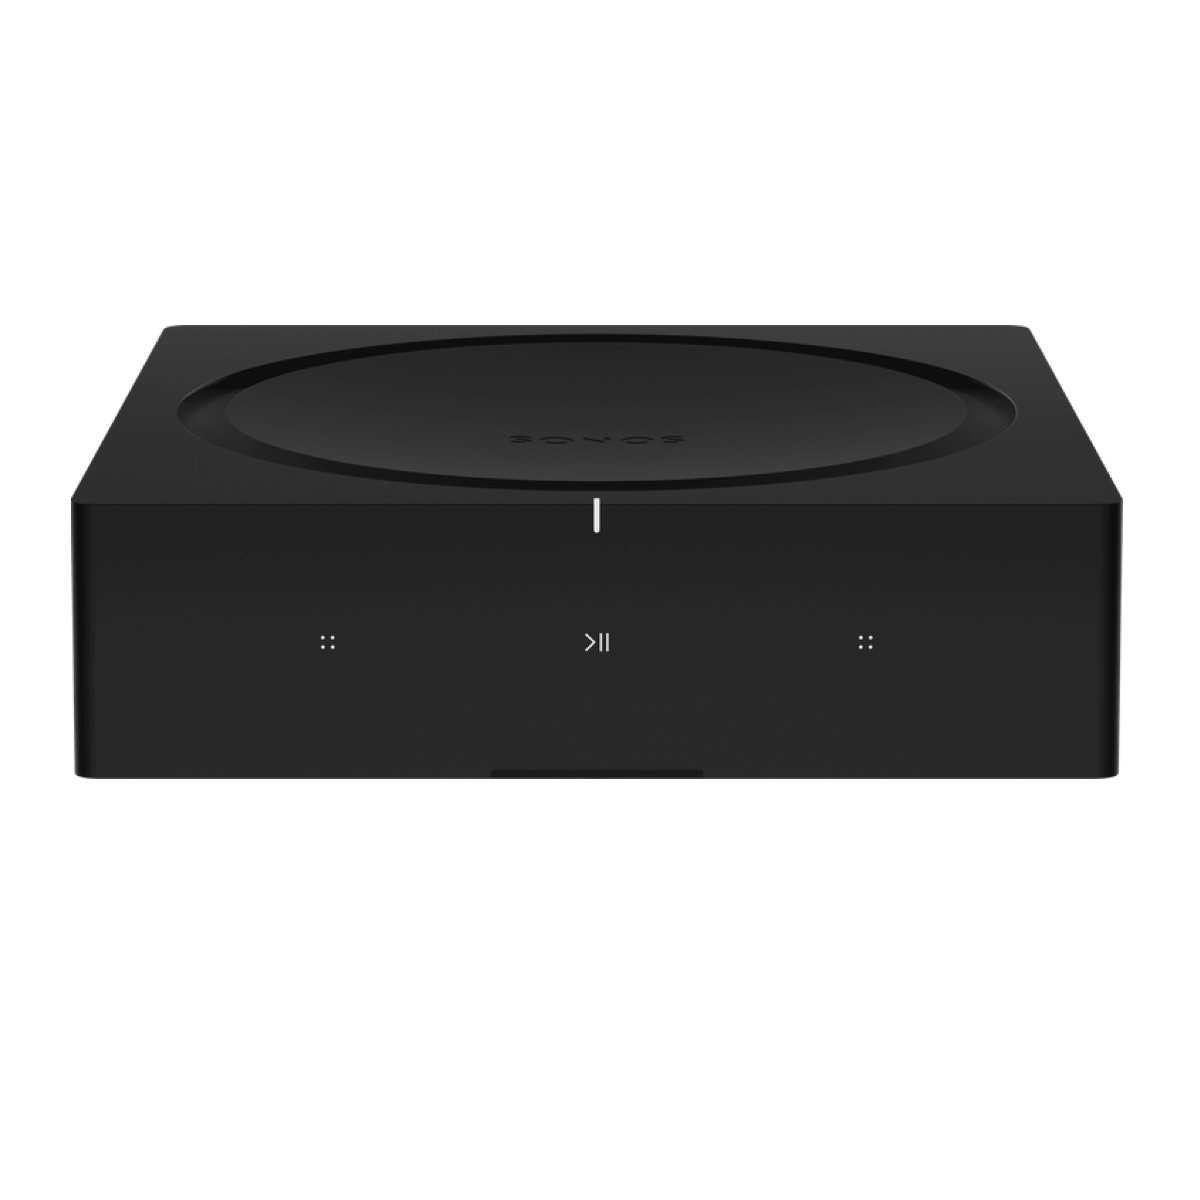 Sonos Amp, Sonos, Integrated Amplifier - Auratech LLC